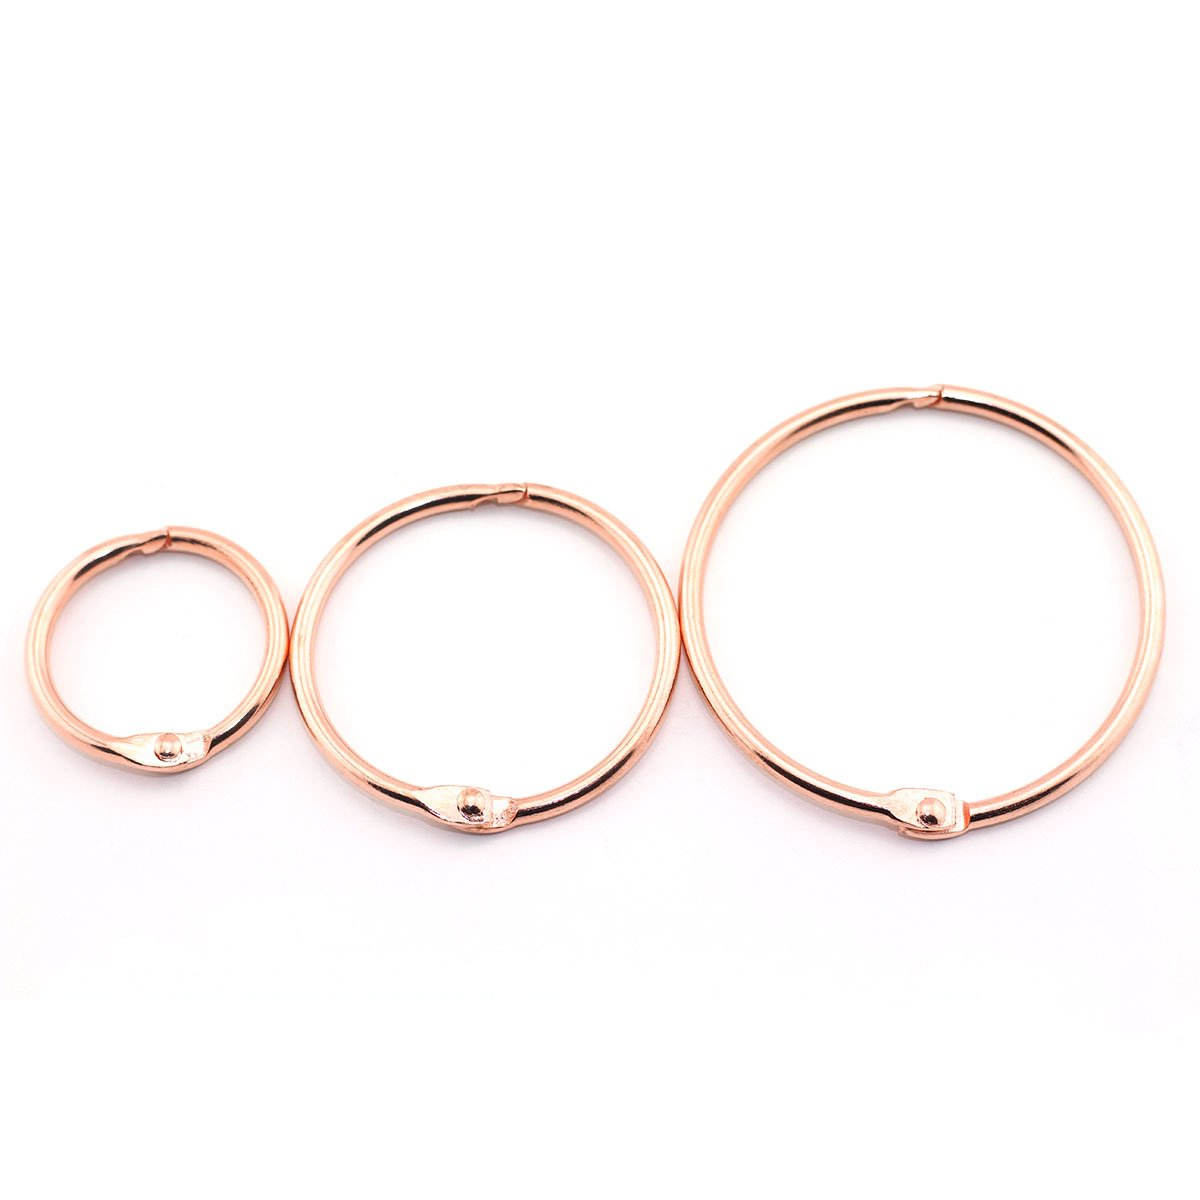 Lind Kitchen 50pcs 1'' 1.5'' 2'' Rose Gold Book Ring Assorted Kit Metal Loose Leaf Book Binder Hinged Buckle Rings Scrapbook Sketchbook Craft Photo Album DIY Binding Ring 25/38/51mm by Lind Kitchen